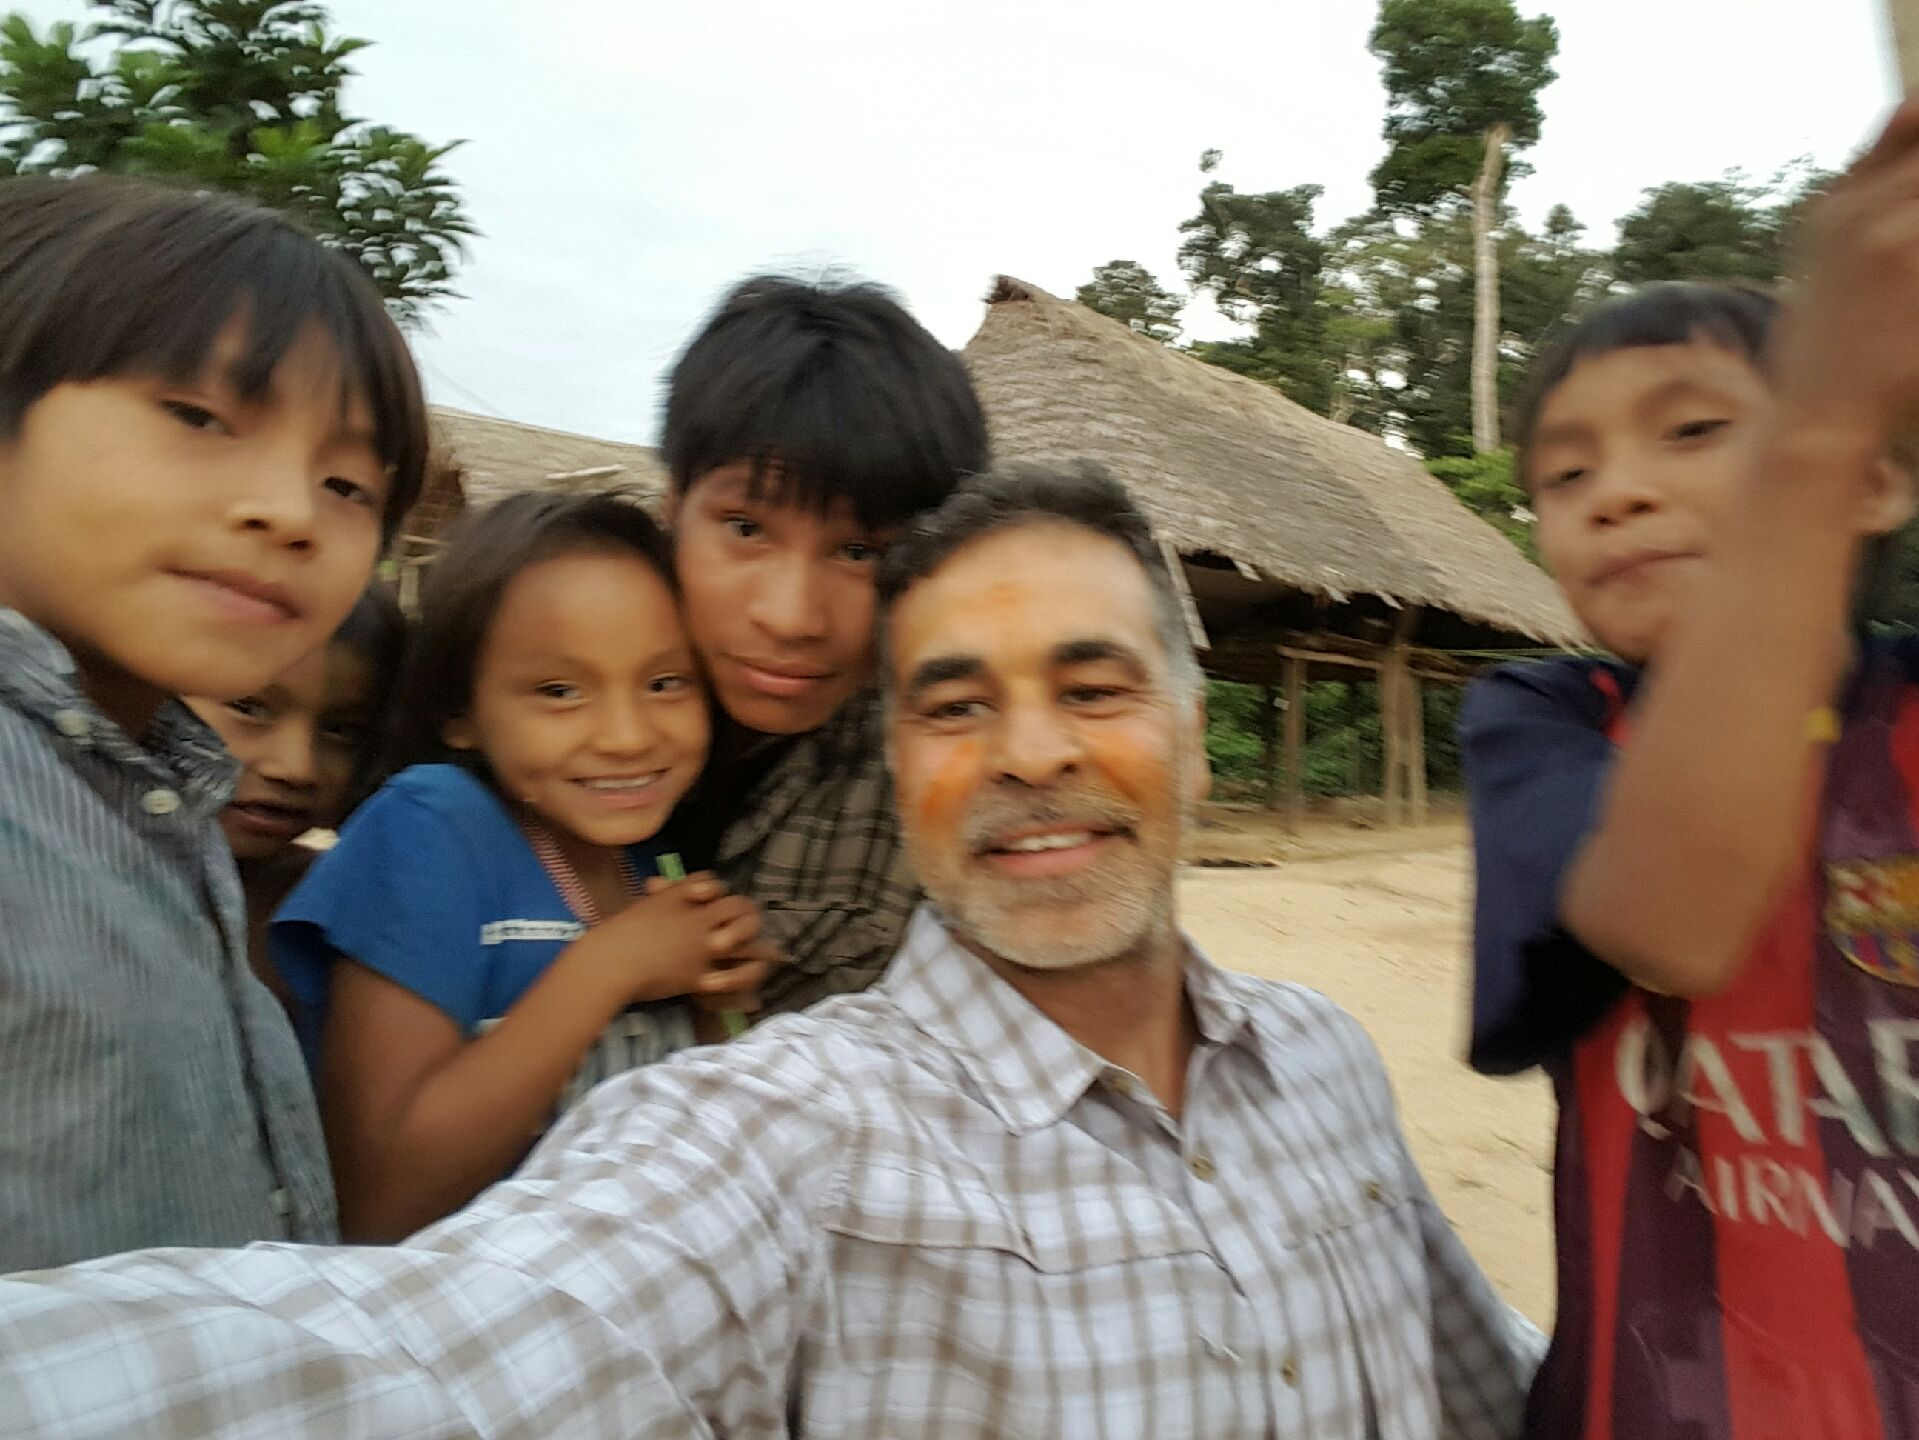 Mas enjoys his time with the native children.